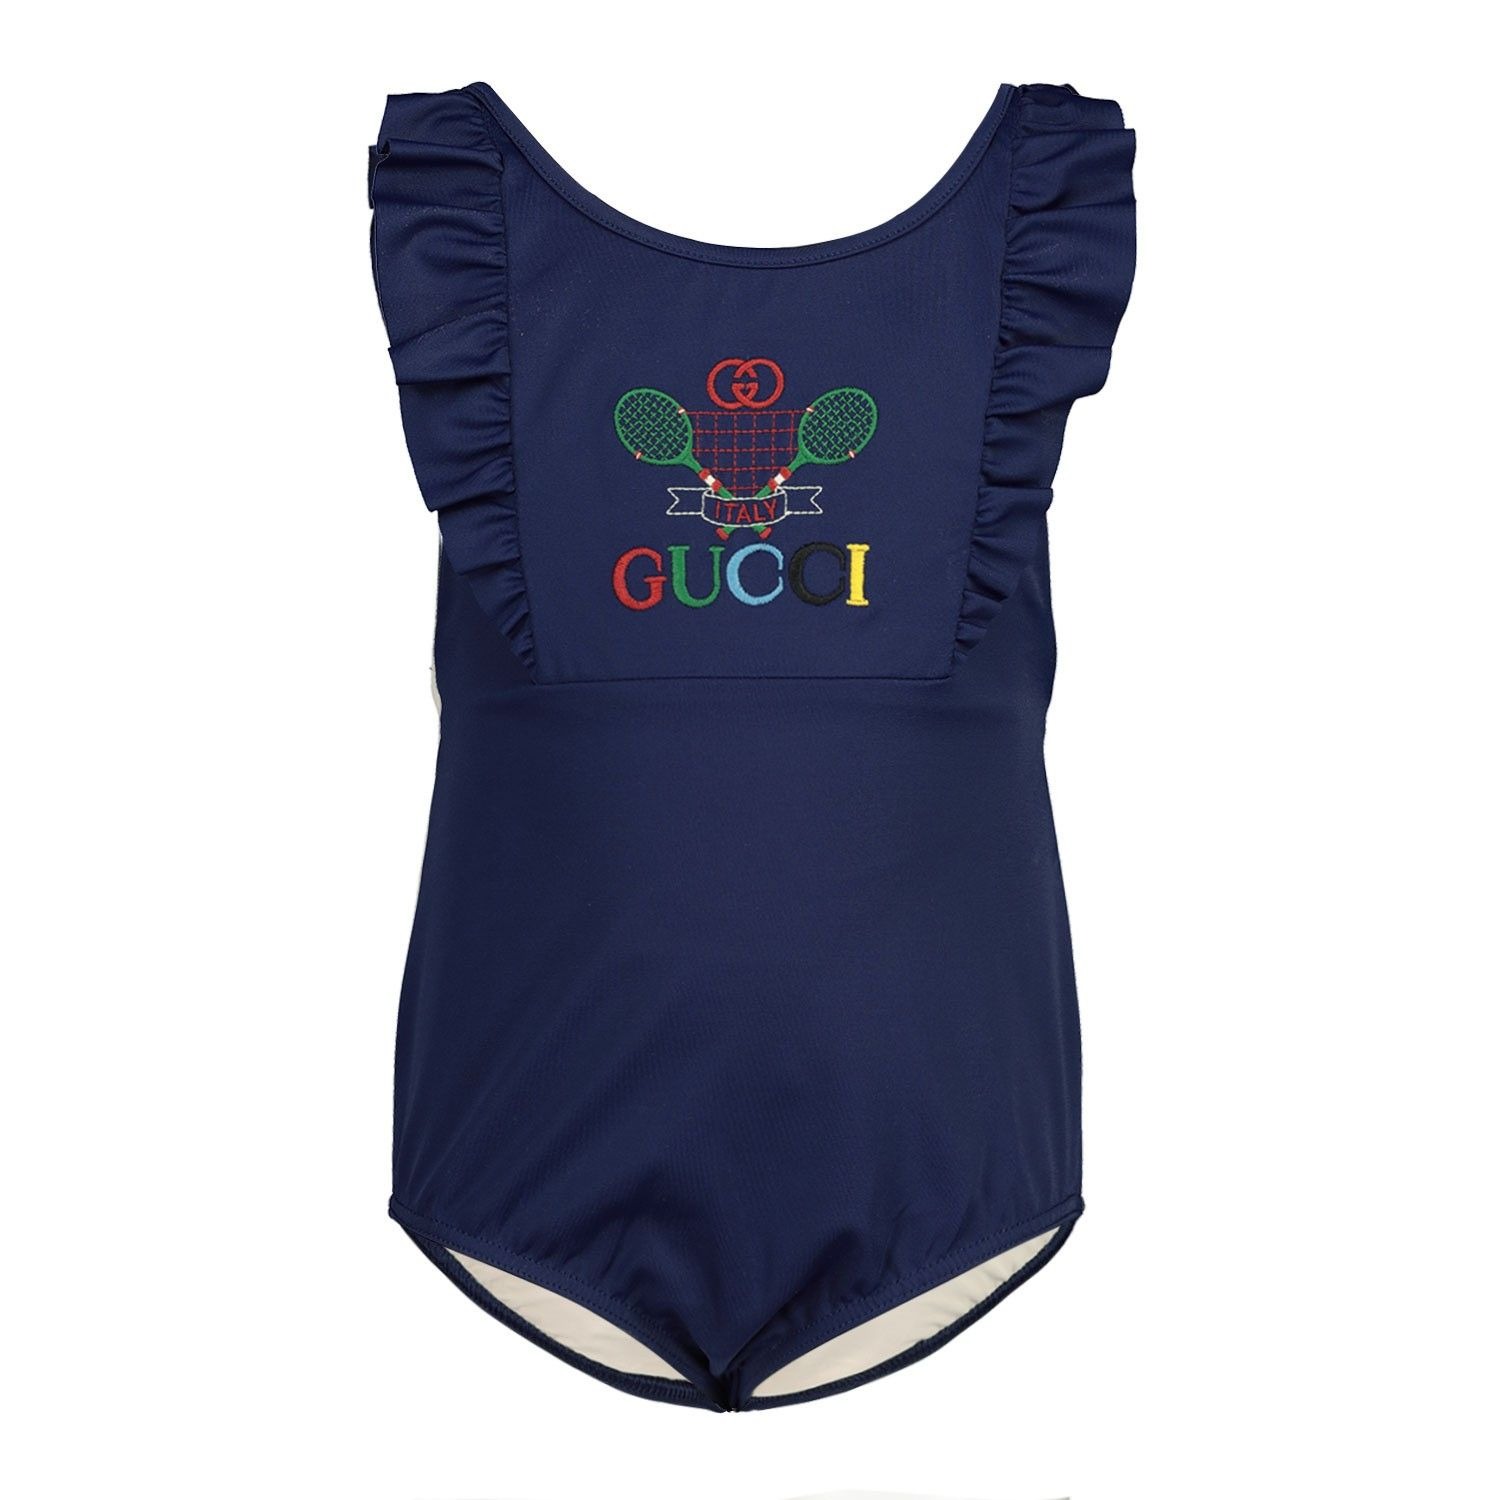 Picture of Gucci 607934 baby swimwear navy